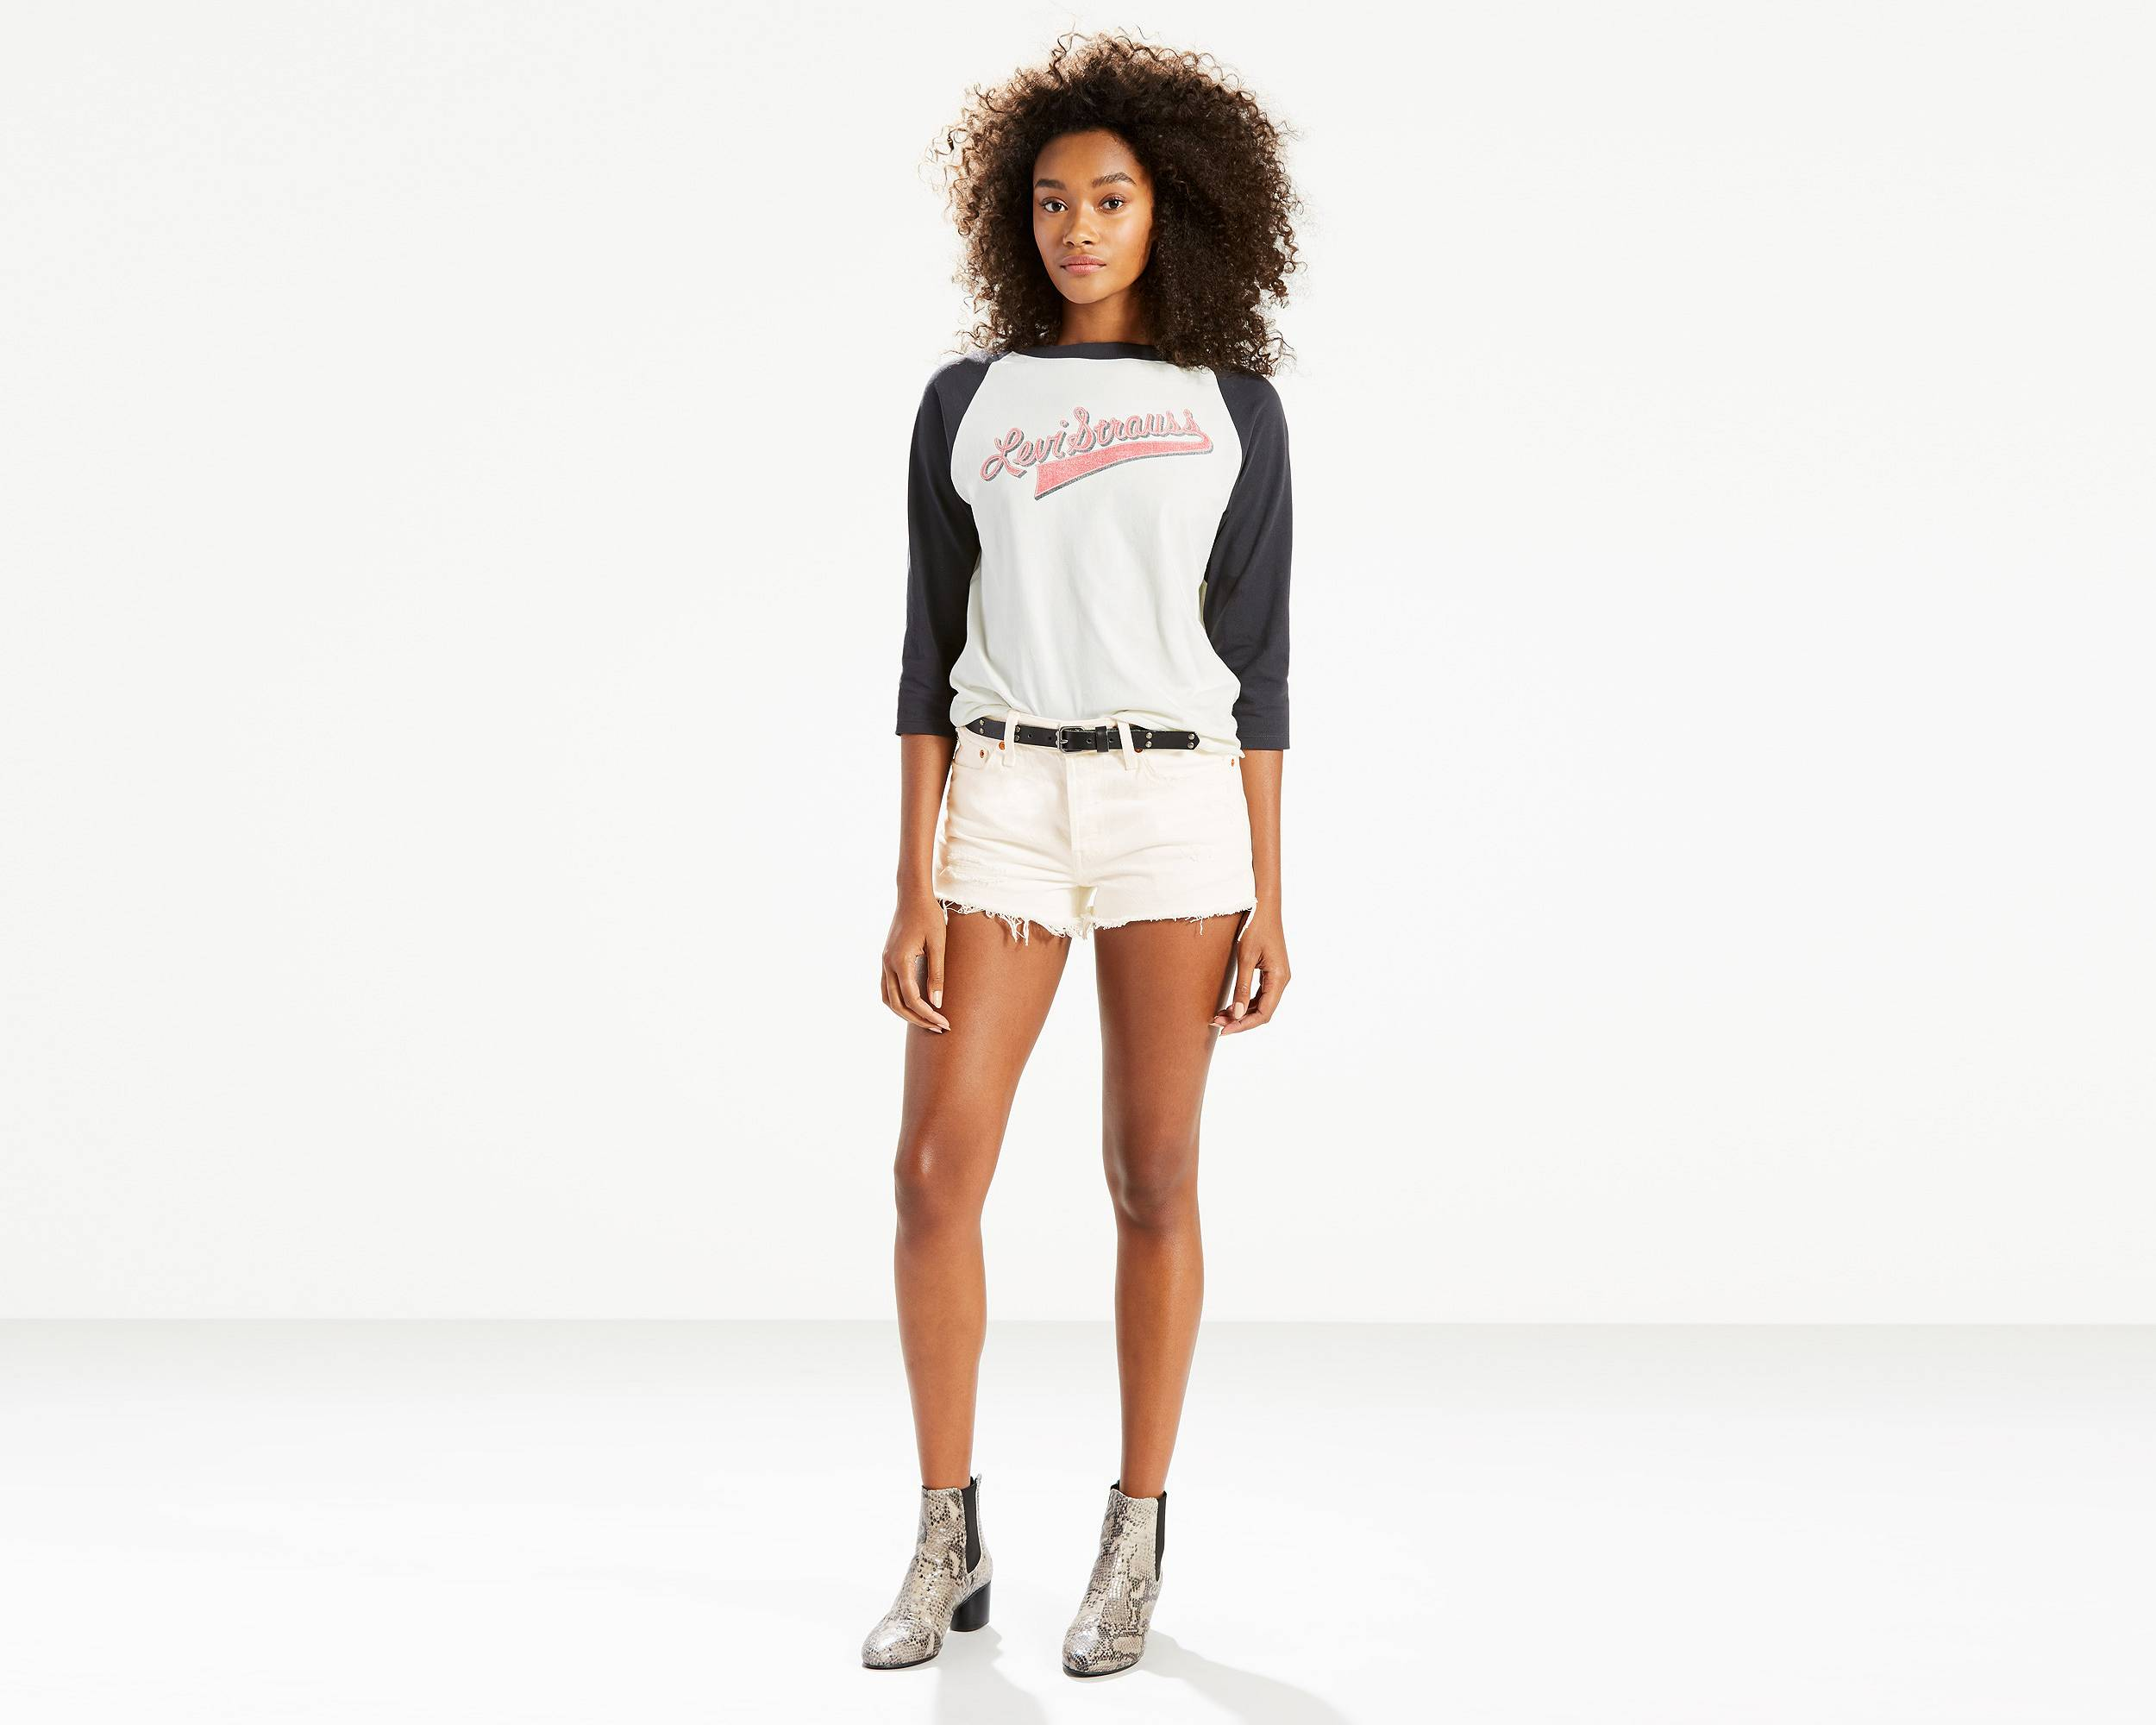 http://lsco1.scene7.com/is/image/lsco/Levi/clothing/323170057-front-pdp.jpg?$2500x2000$